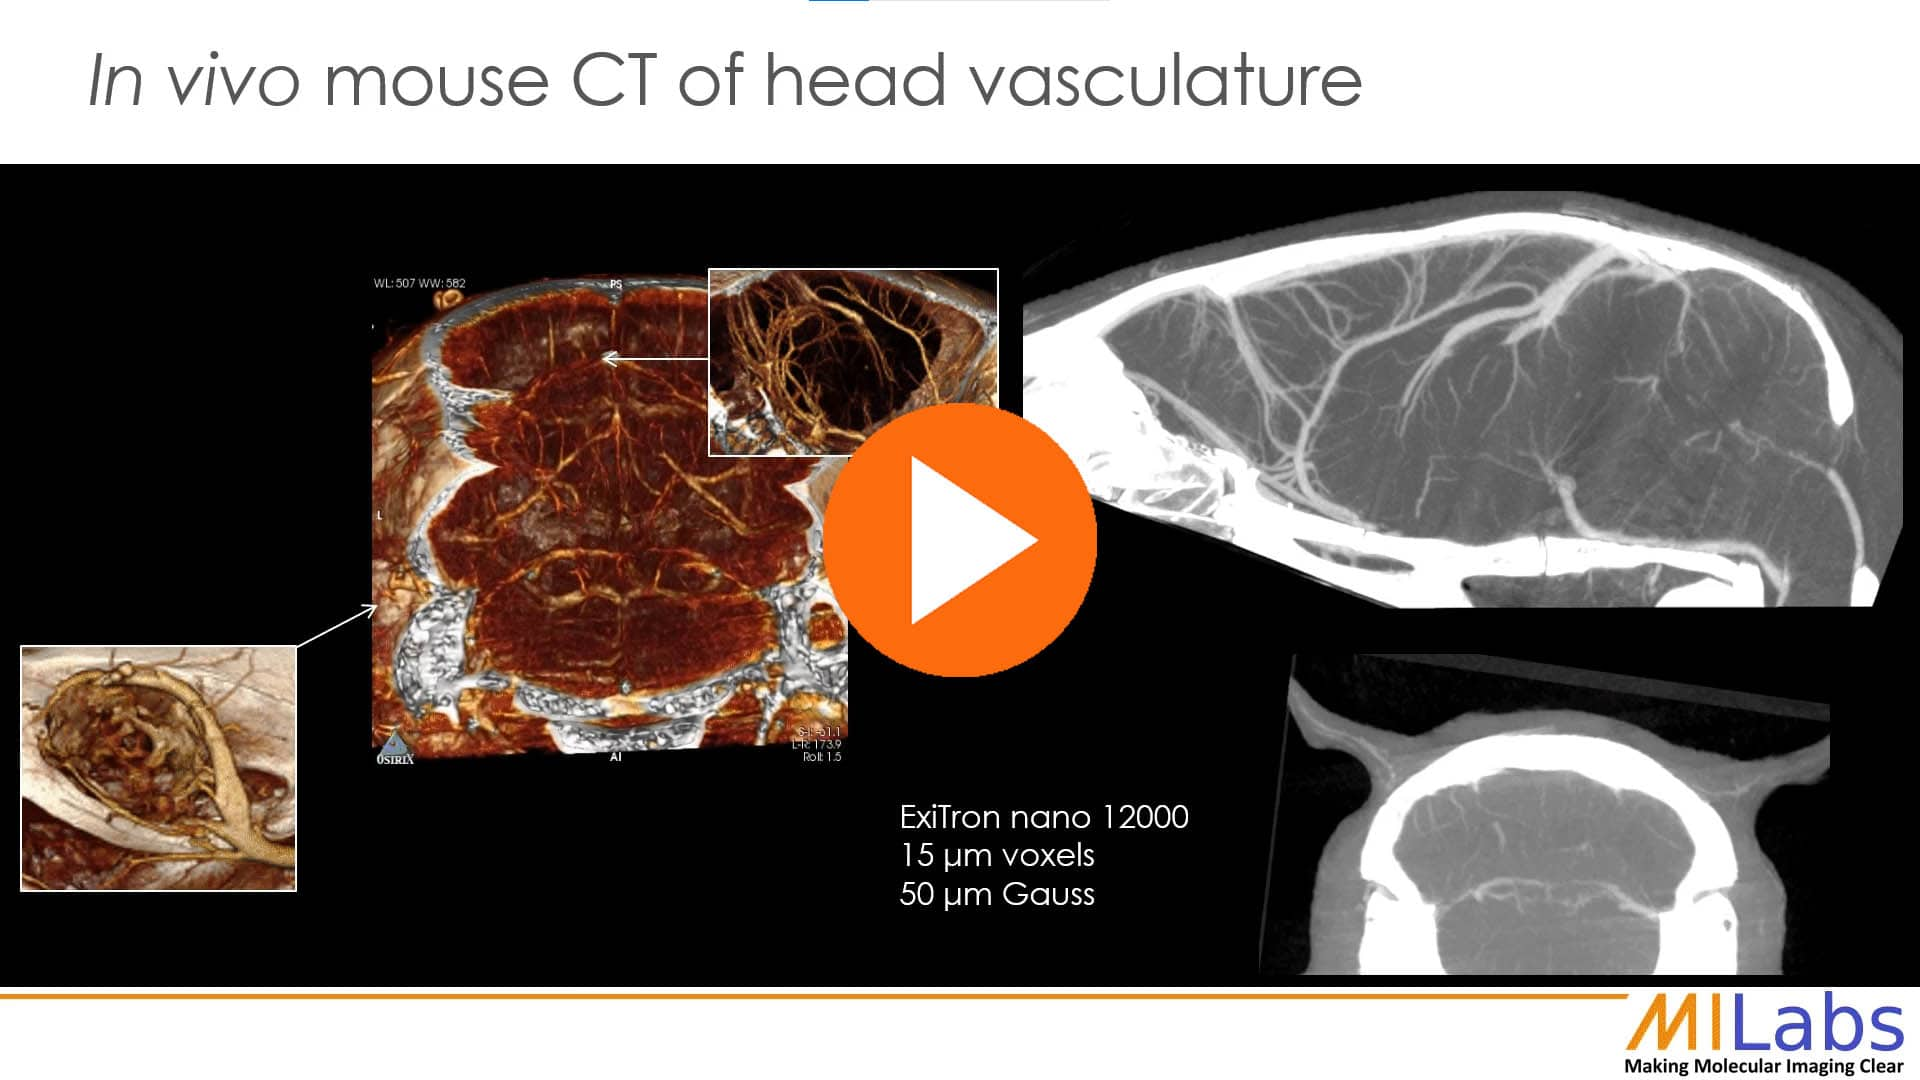 in vivo mouse CT of head vasculature